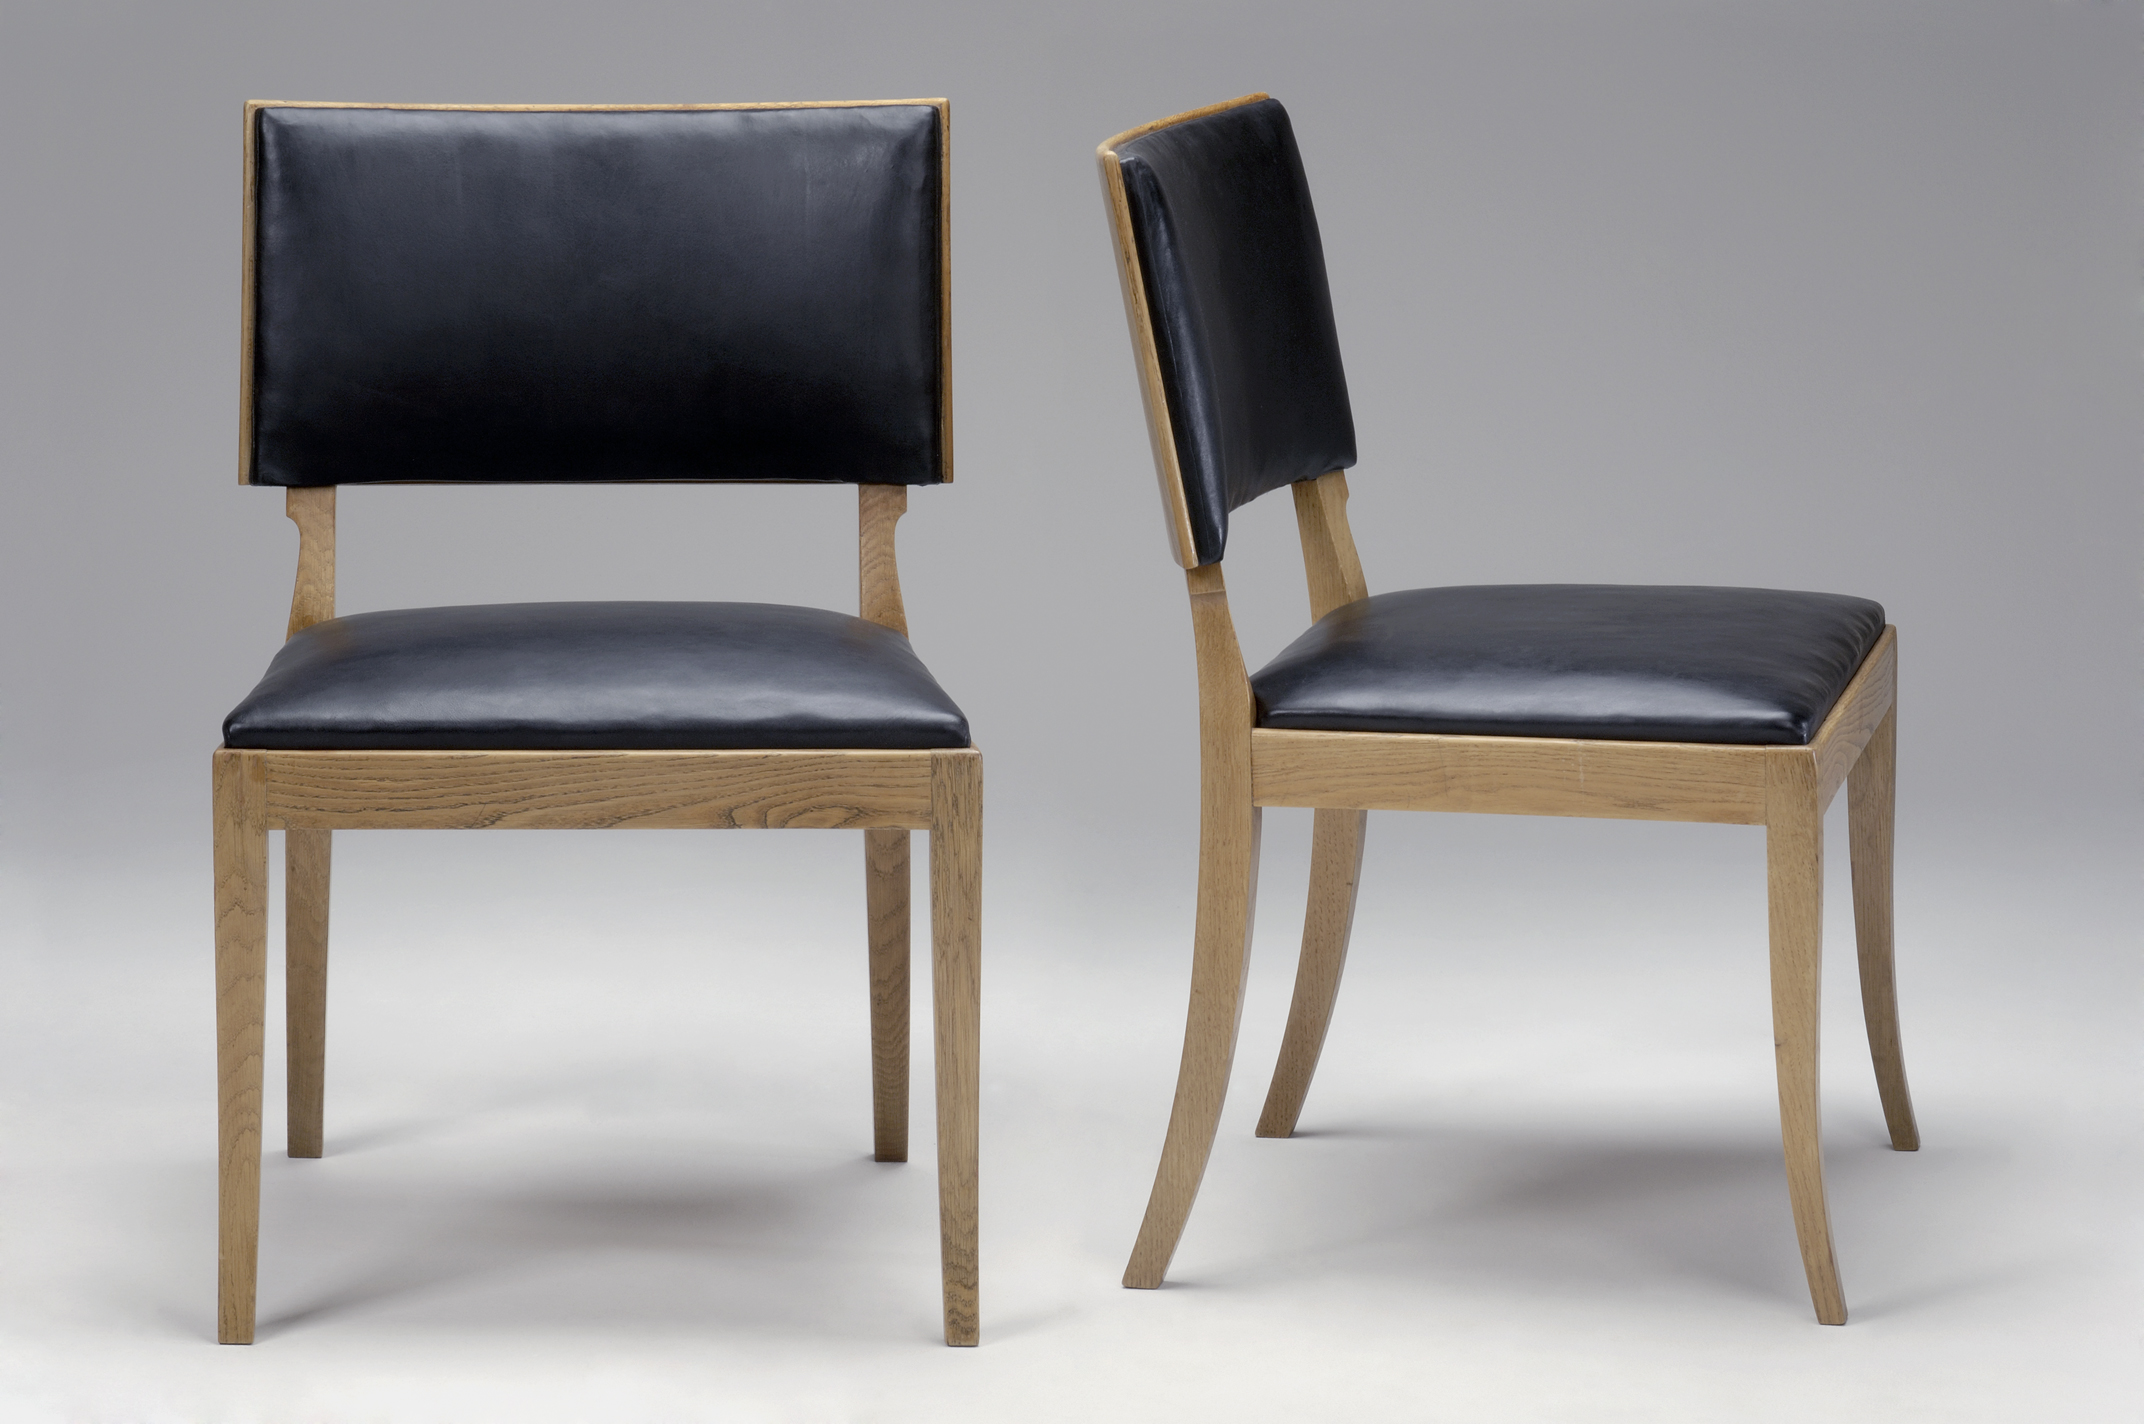 Pair of Henningsen Chairs